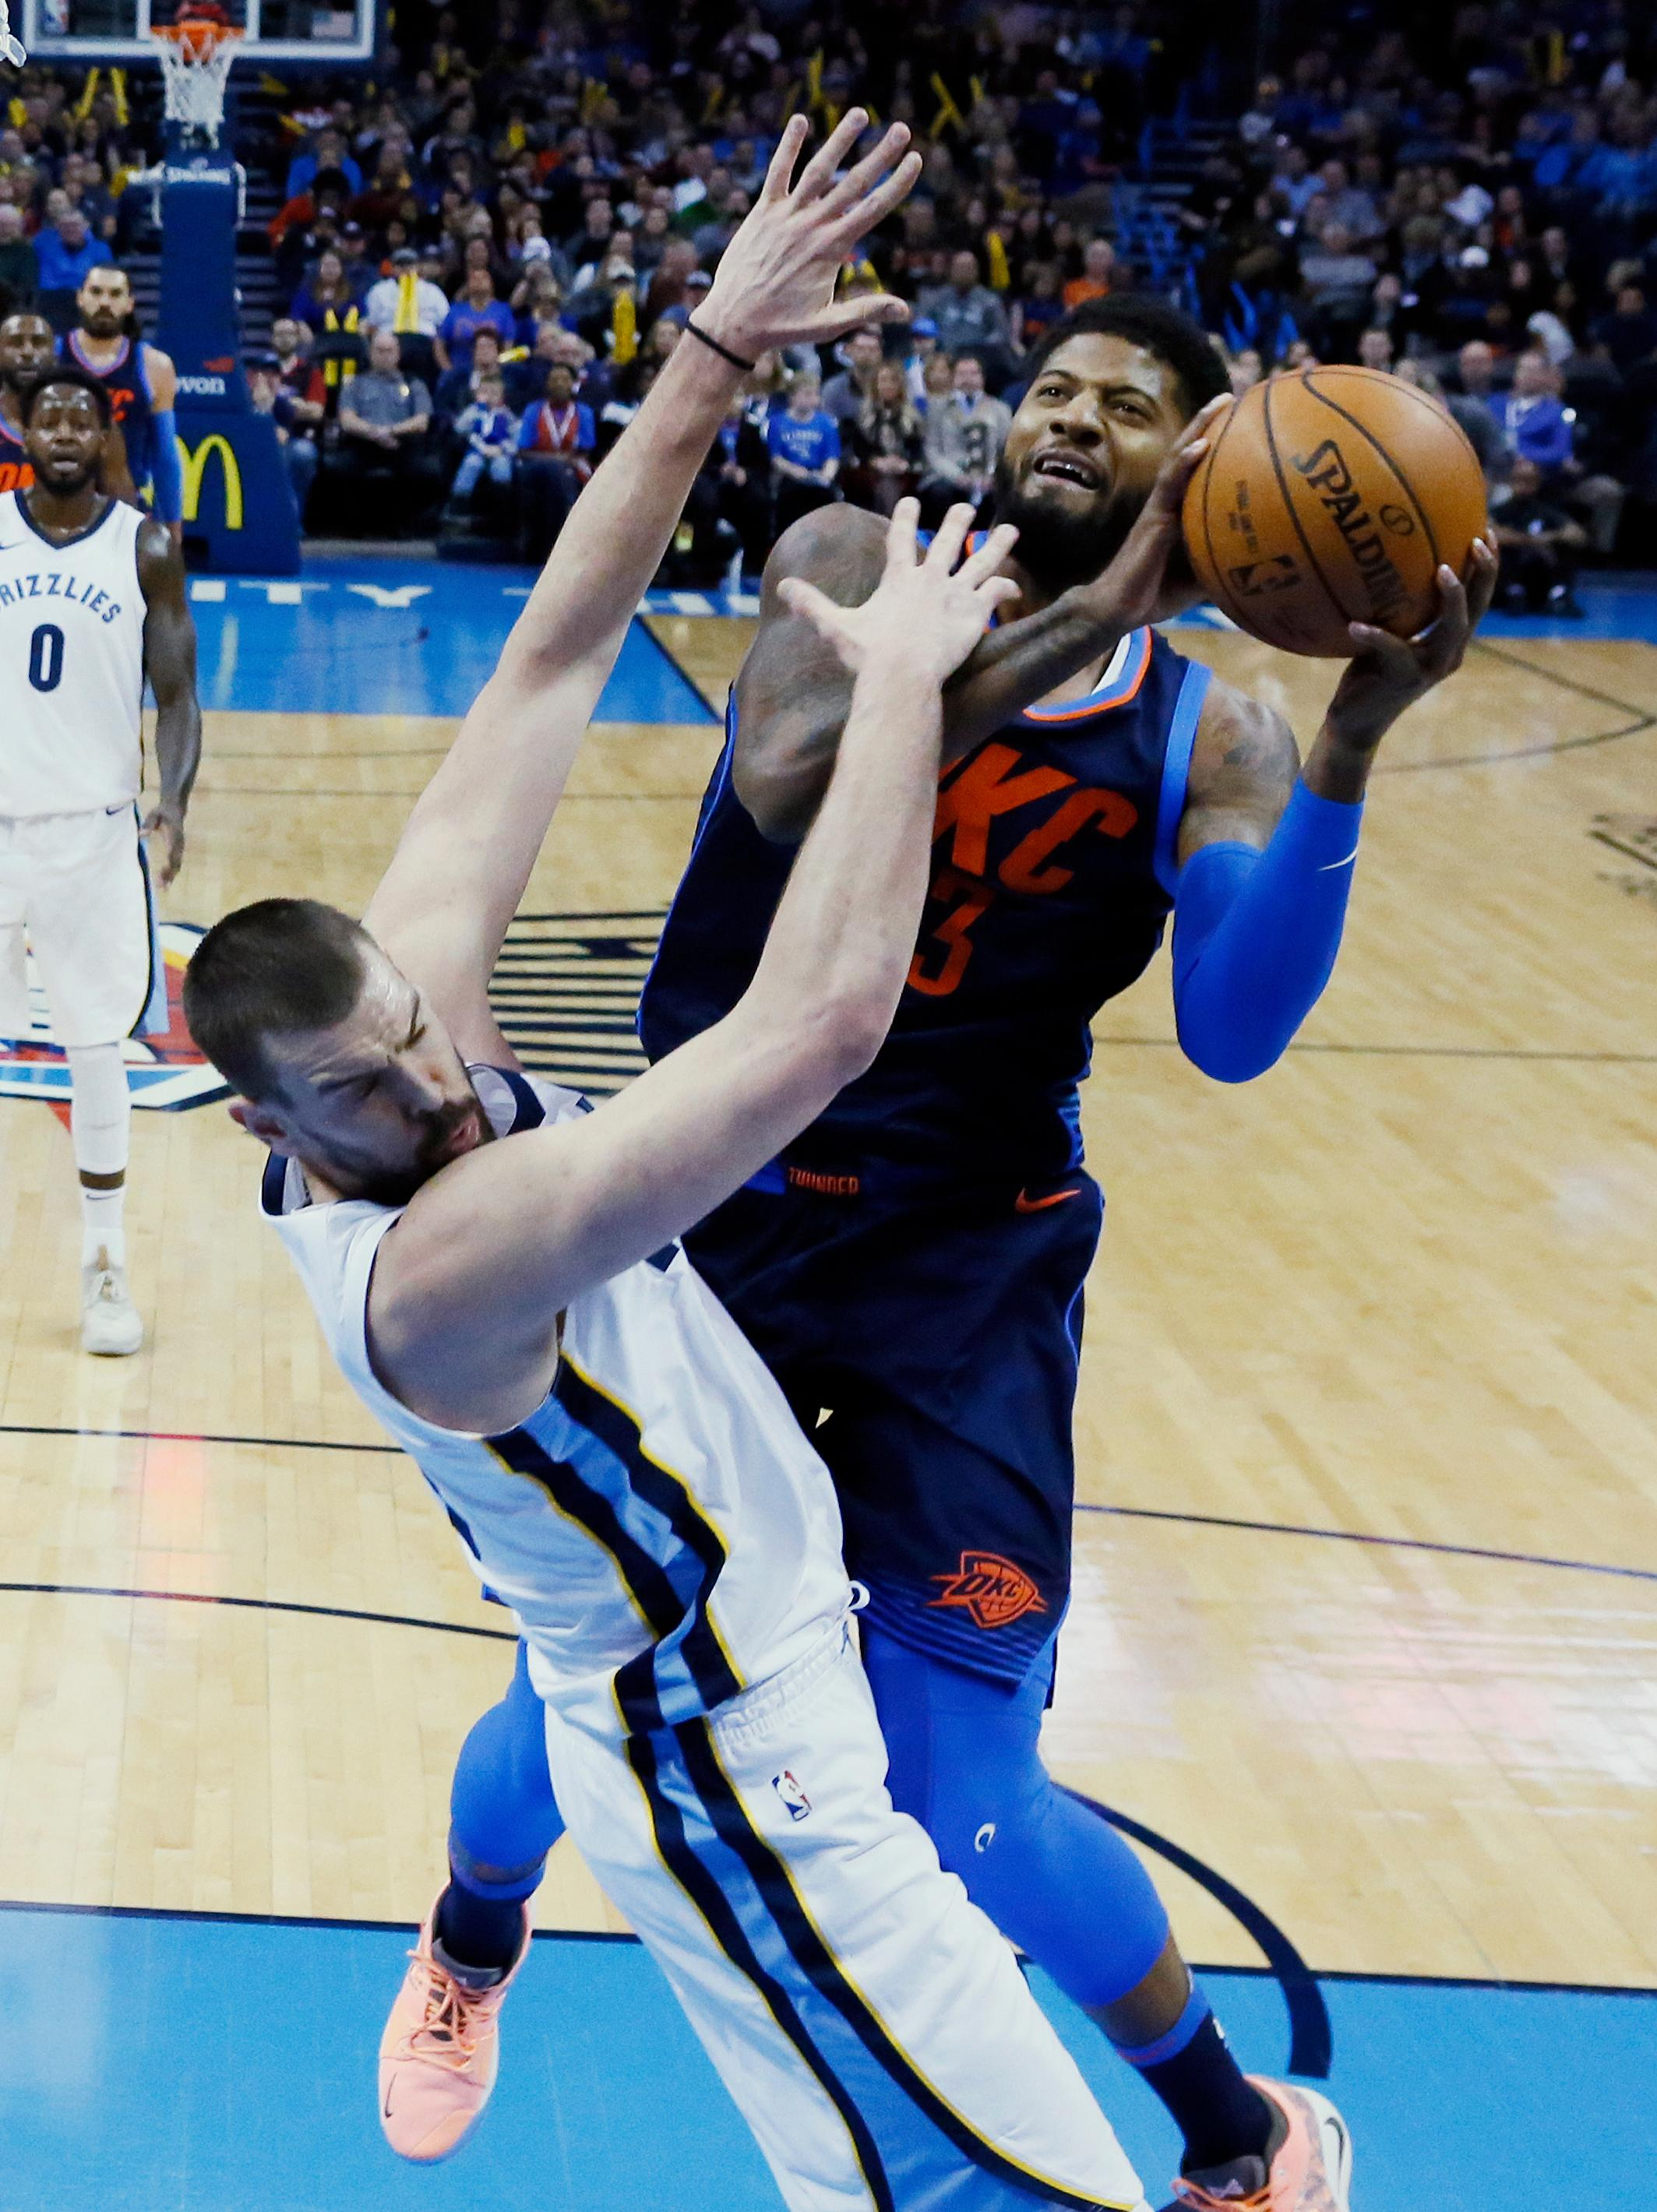 Oklahoma City Thunder forward Paul George, right, shoots her Memphis Grizzlies center Marc Gasol, left, in the first half of an NBA basketball game in Oklahoma City, Sunday, Feb. 11, 2018. (AP Photo/Sue Ogrocki)